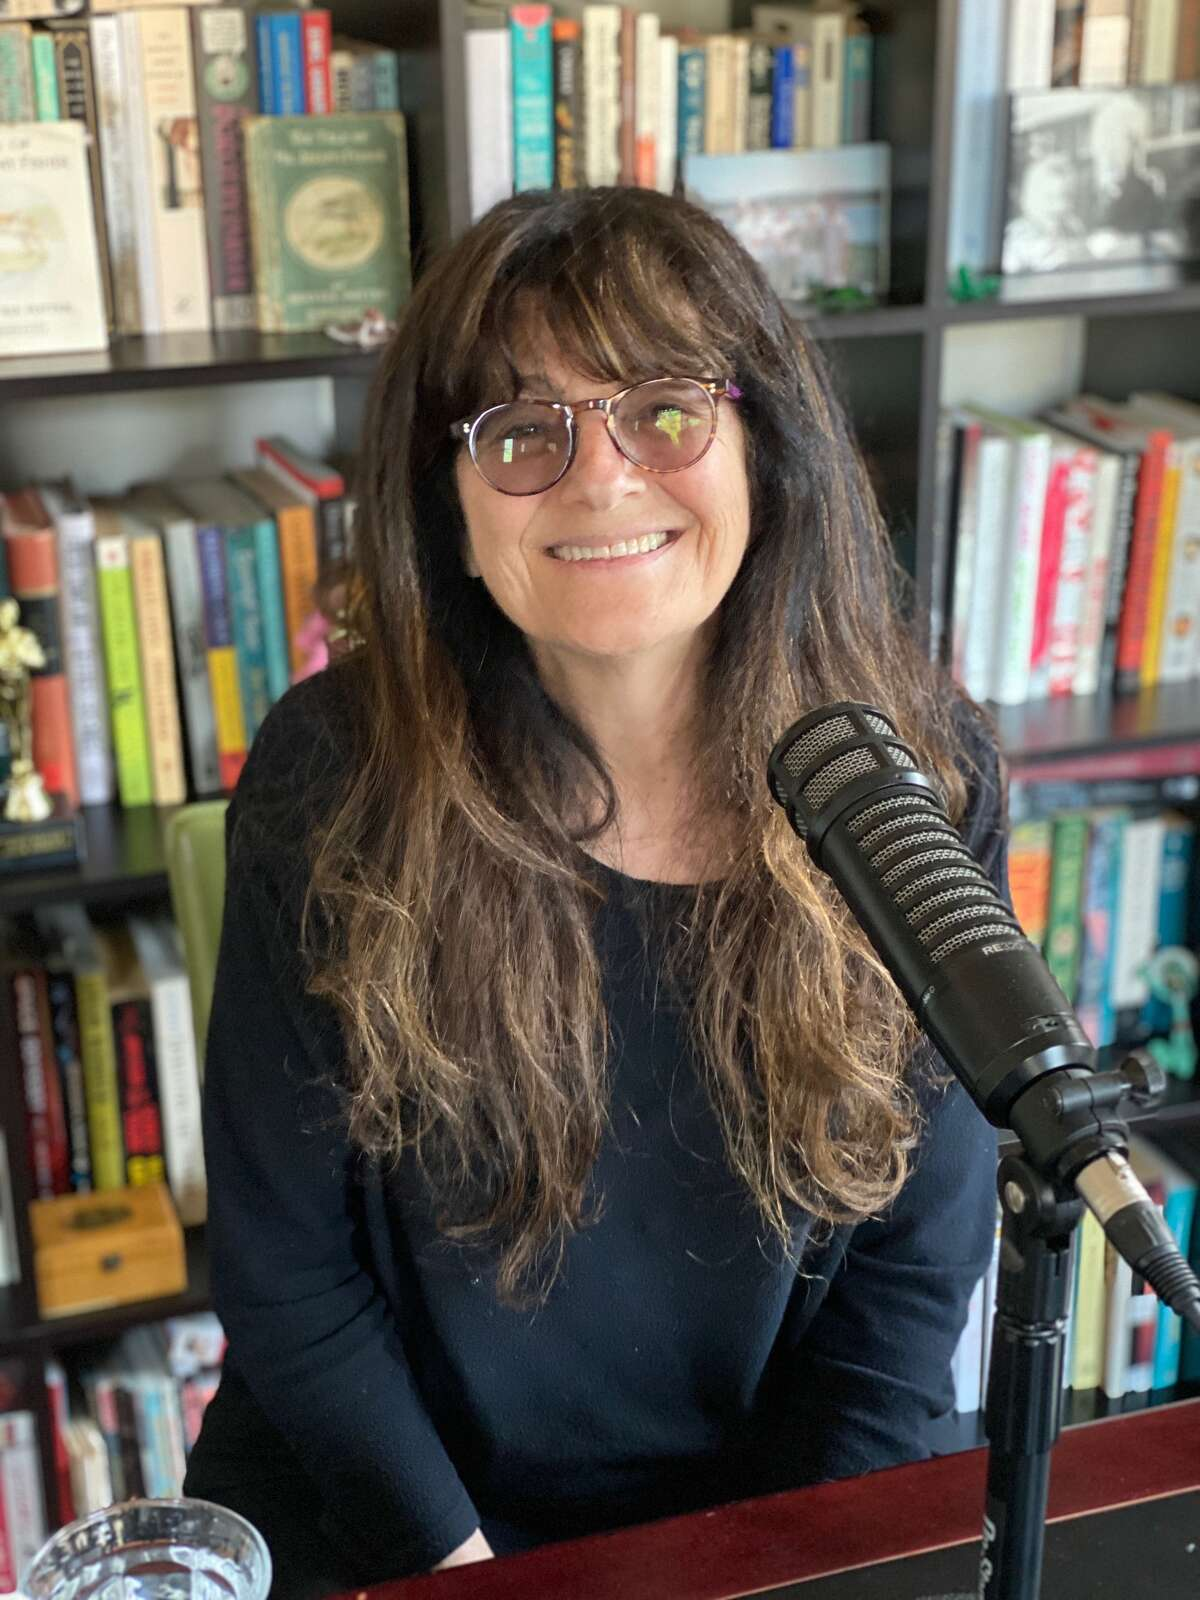 Ruth Reichl, the former editor-in-chief of Gourmet magazine, lives full time at her Spencertown home in Columbia County.